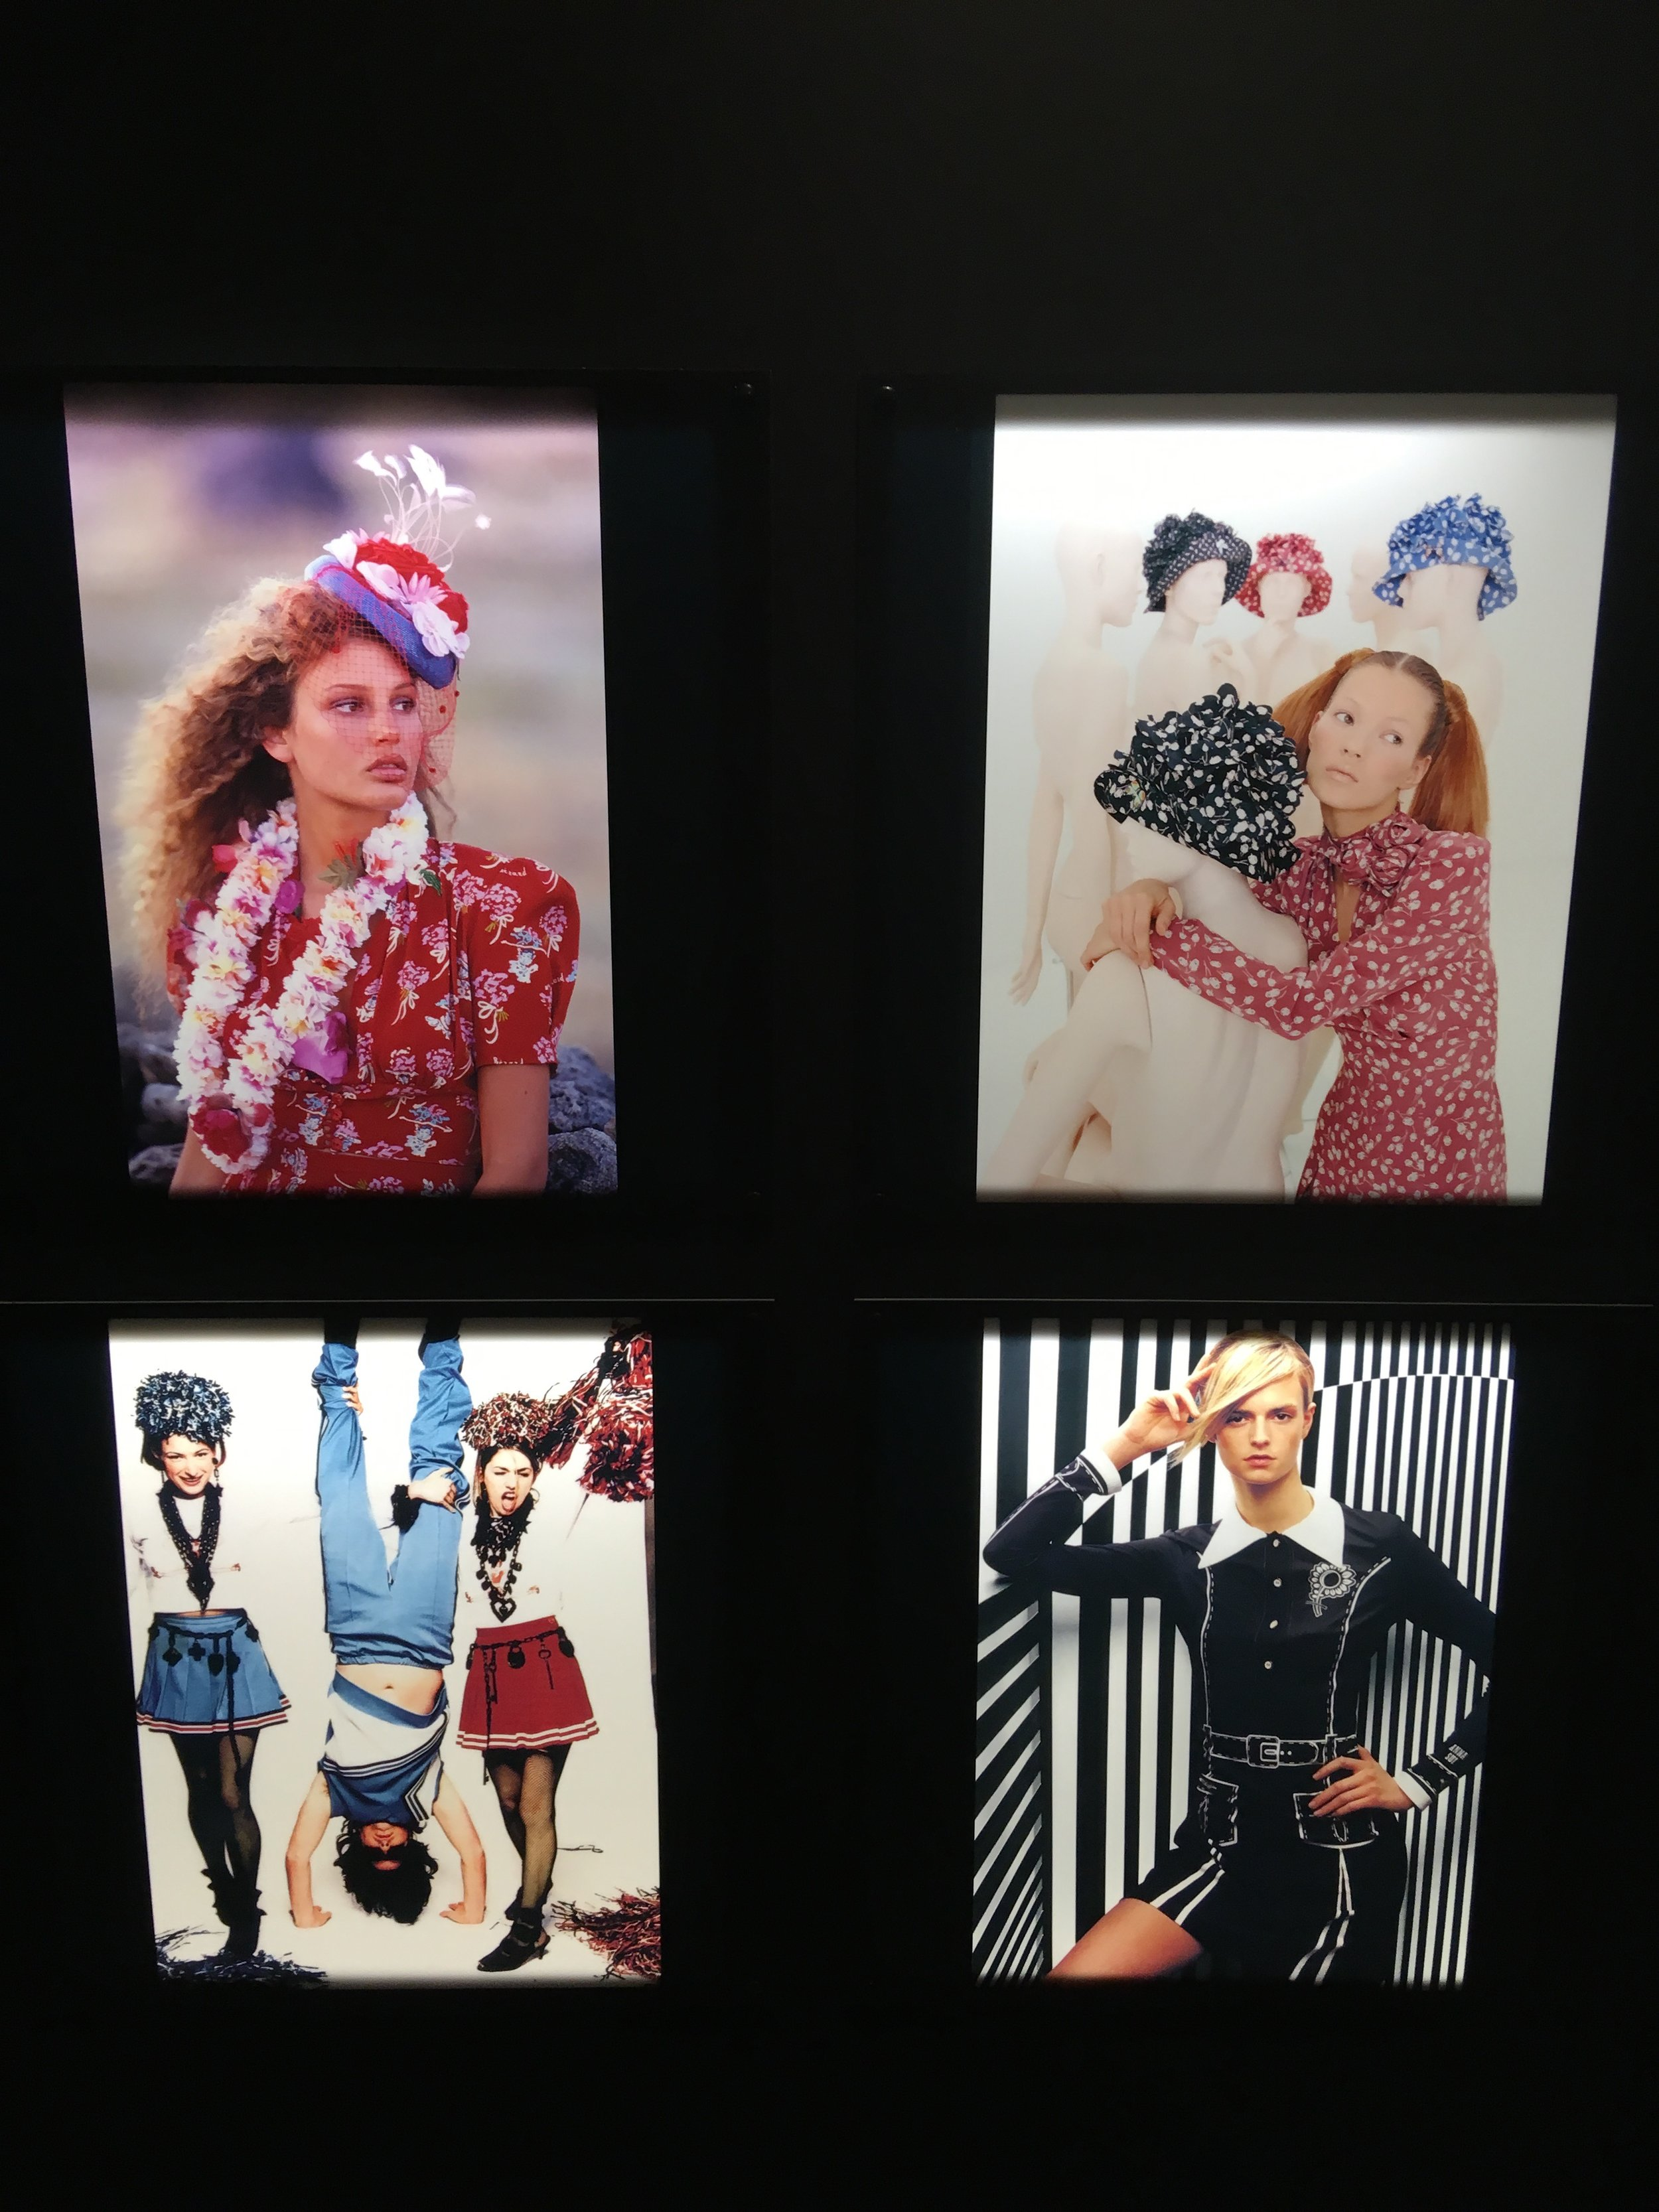 Personal stylists London: Anna Sui effortlessly makes hip and exuberantly original clothing.